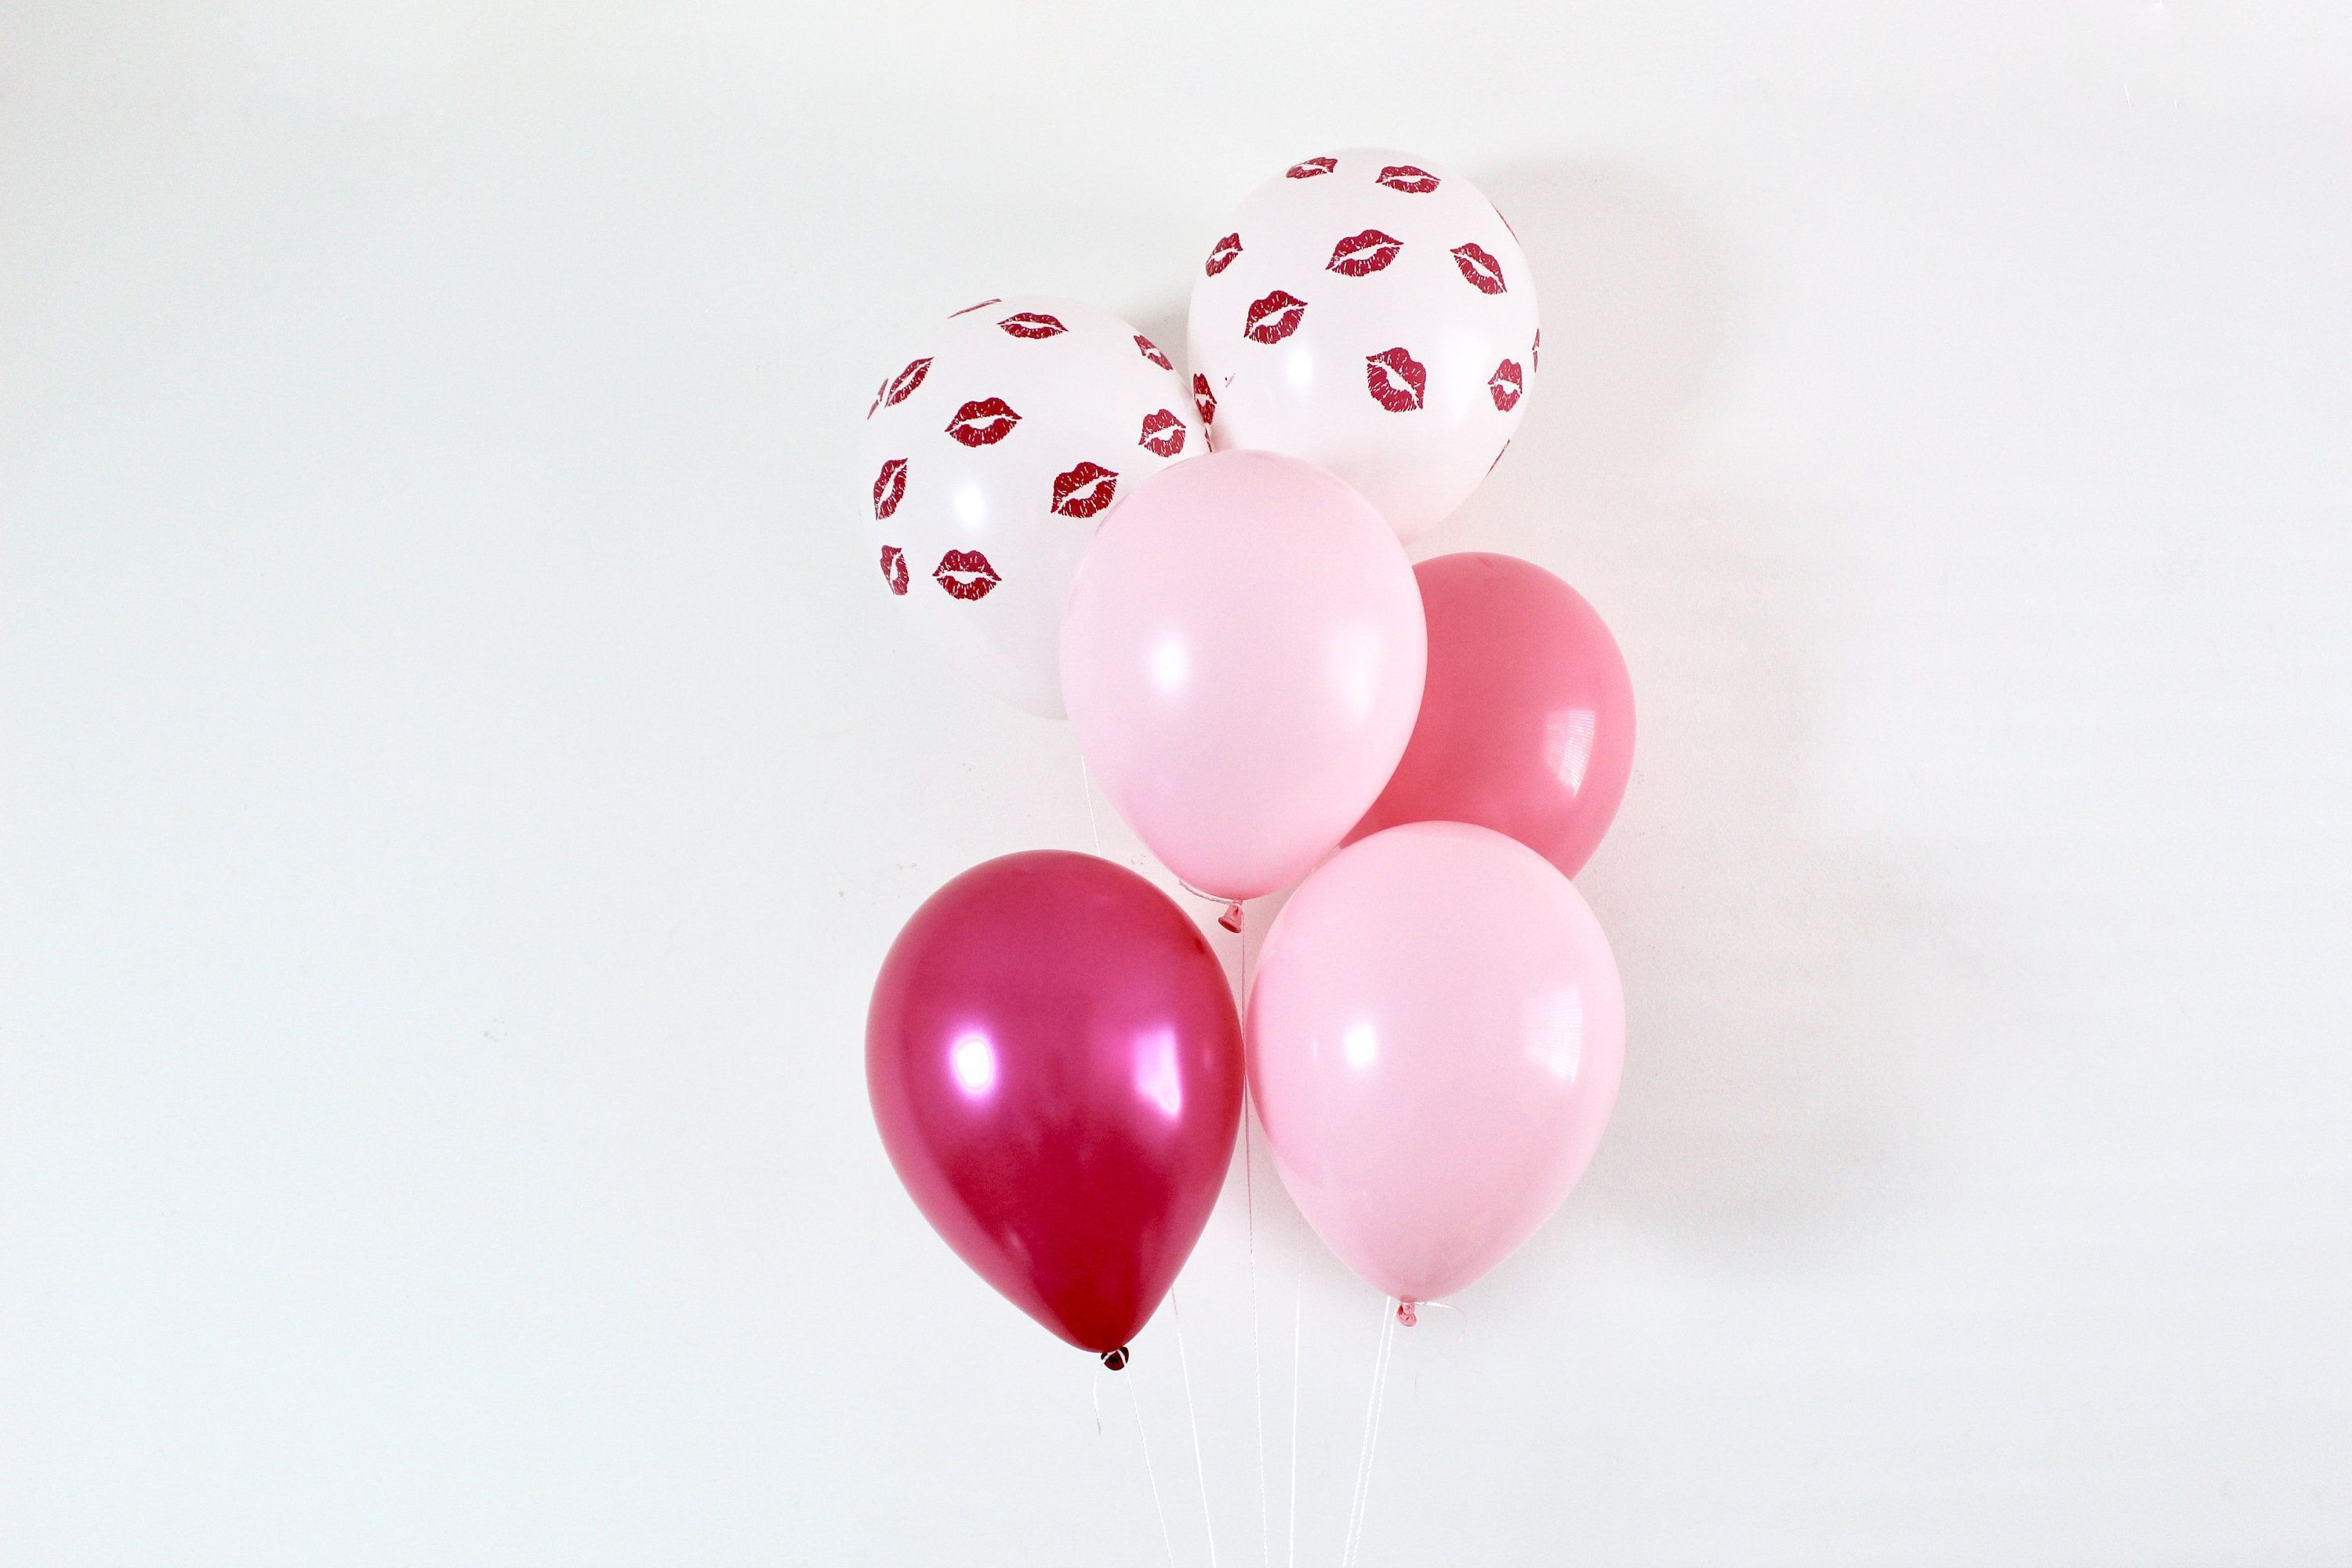 Pink Hot Pink Kissy Lips Balloons Valentines Day Balloons Galentines Day Party B...  Pink Hot Pink Kissy Lips Balloons Valentines Day Balloons Galentines Day Party Bachelorette Party L #Balloons #Day #Galentines #Hot #Kissy #Lips #Party #pink #Valentines